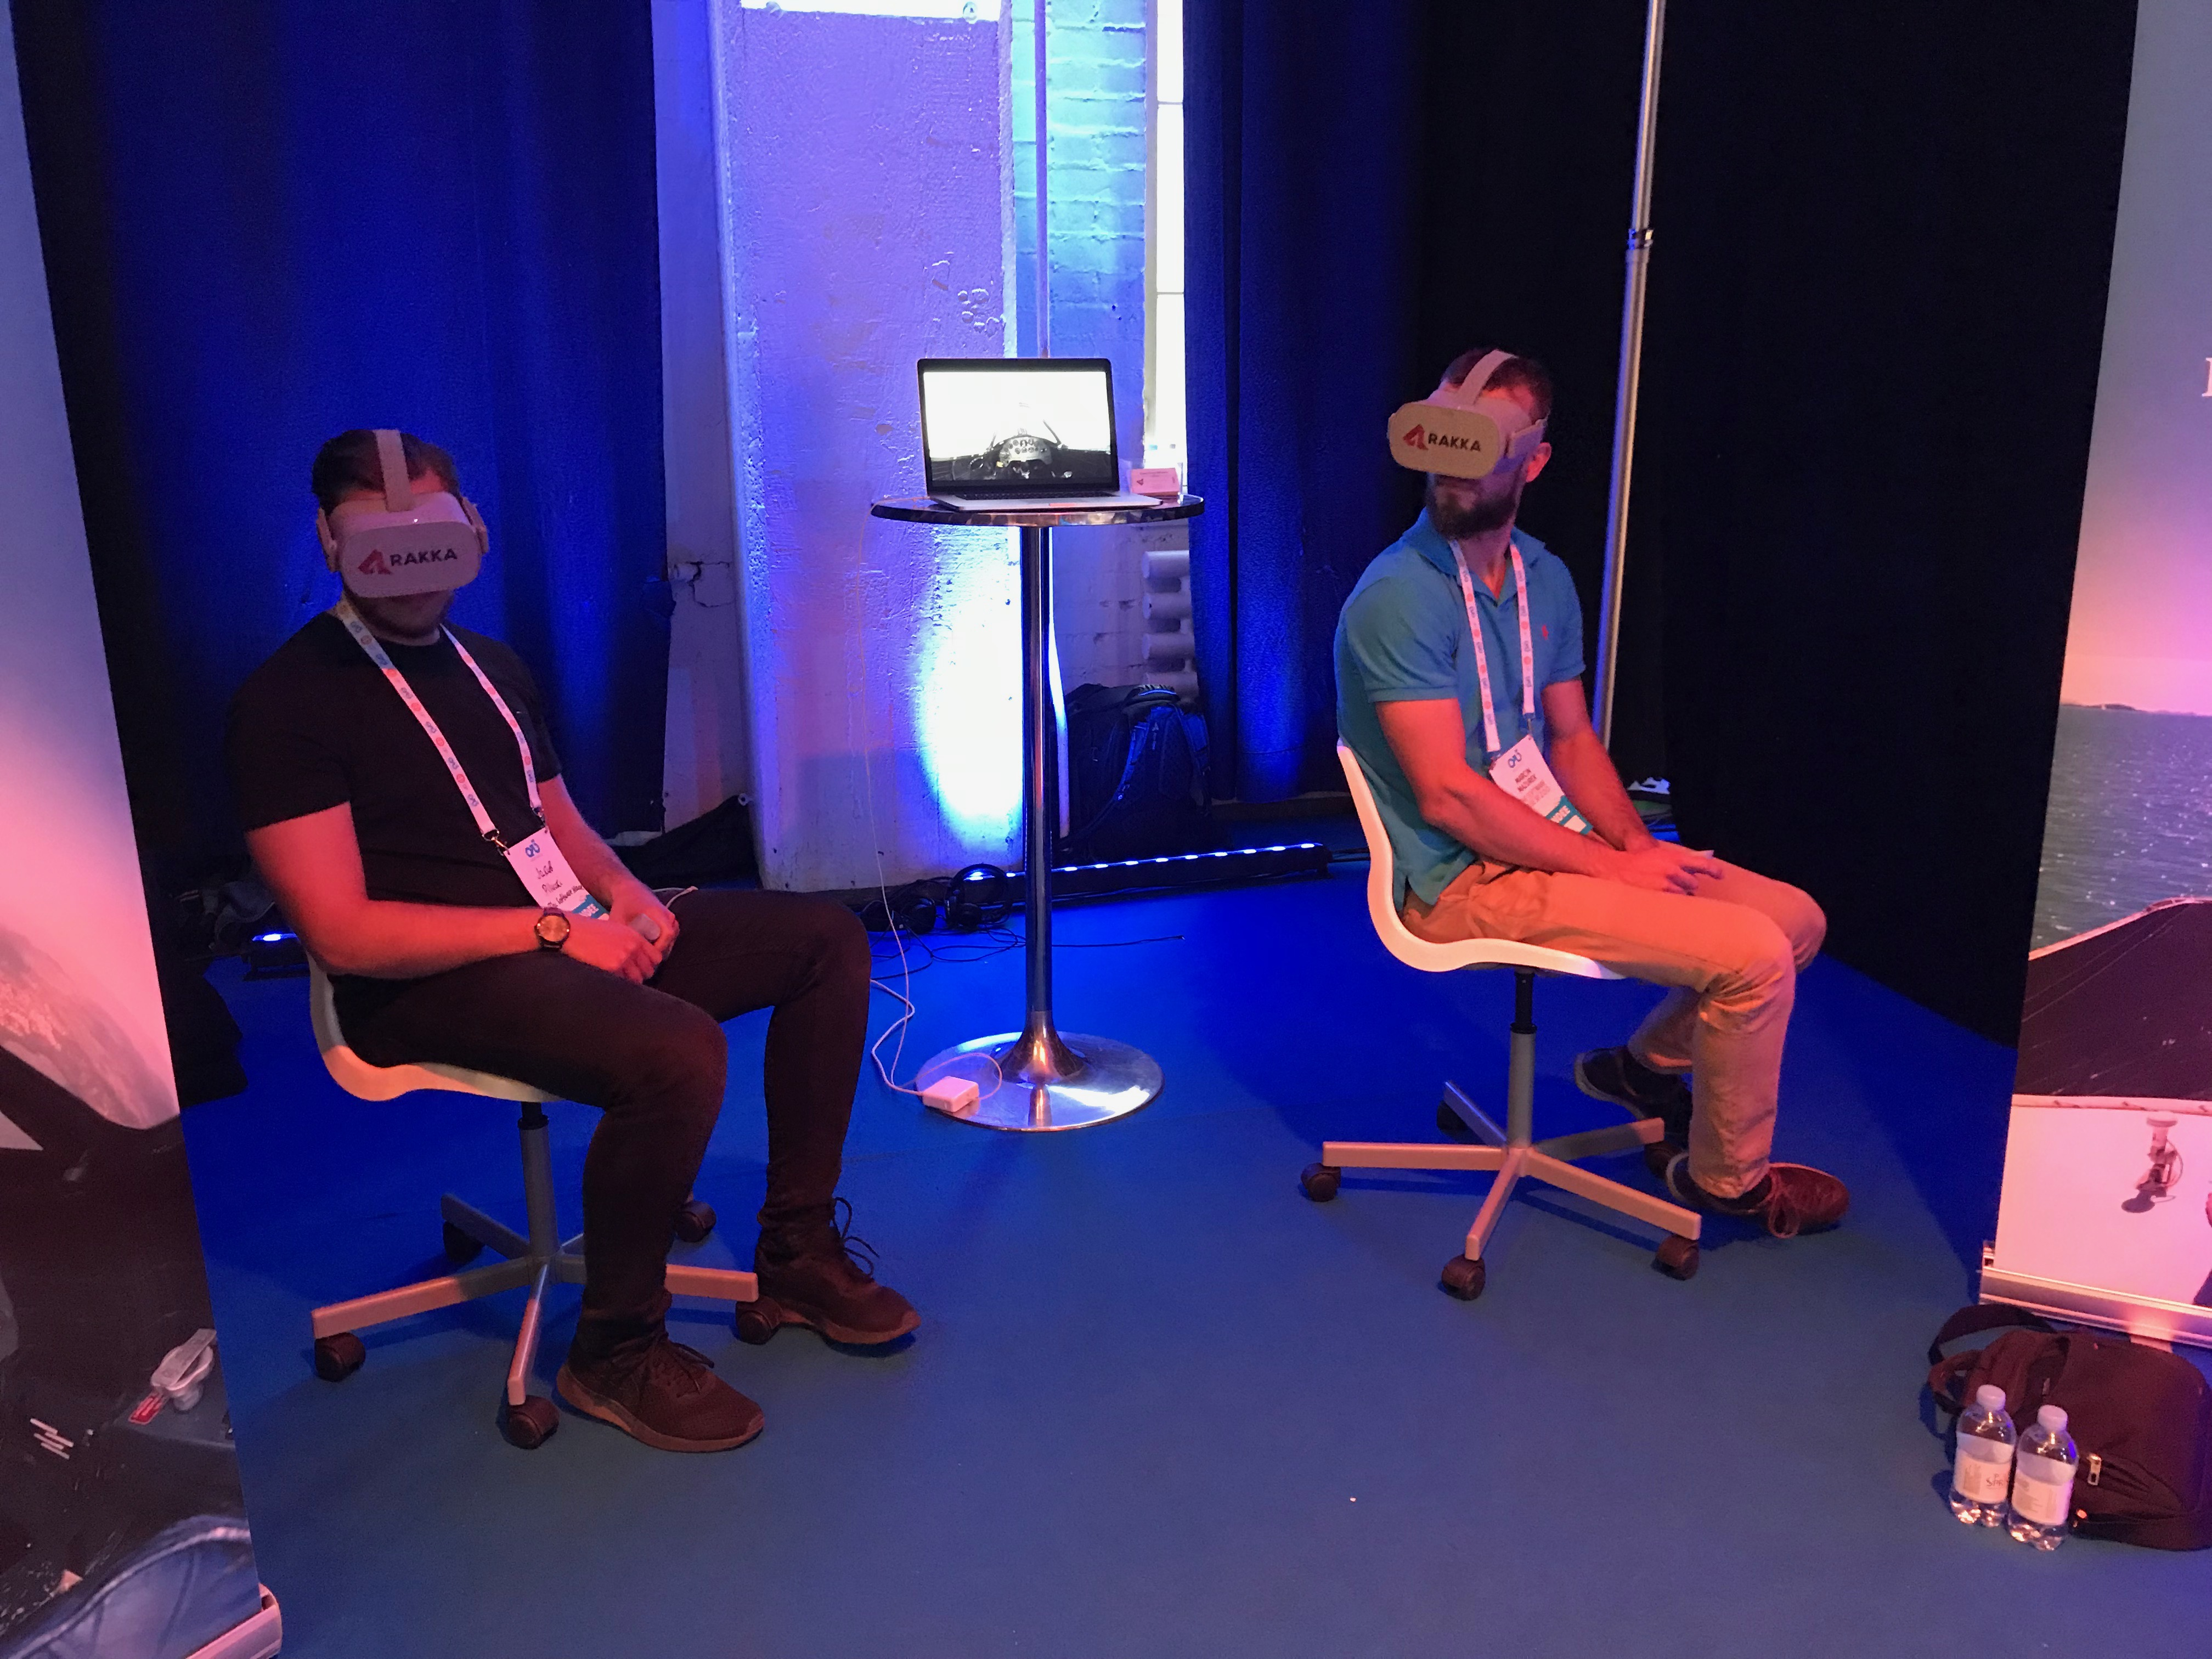 Virtual reality was one of the most popular technologies presented by startups during the conference